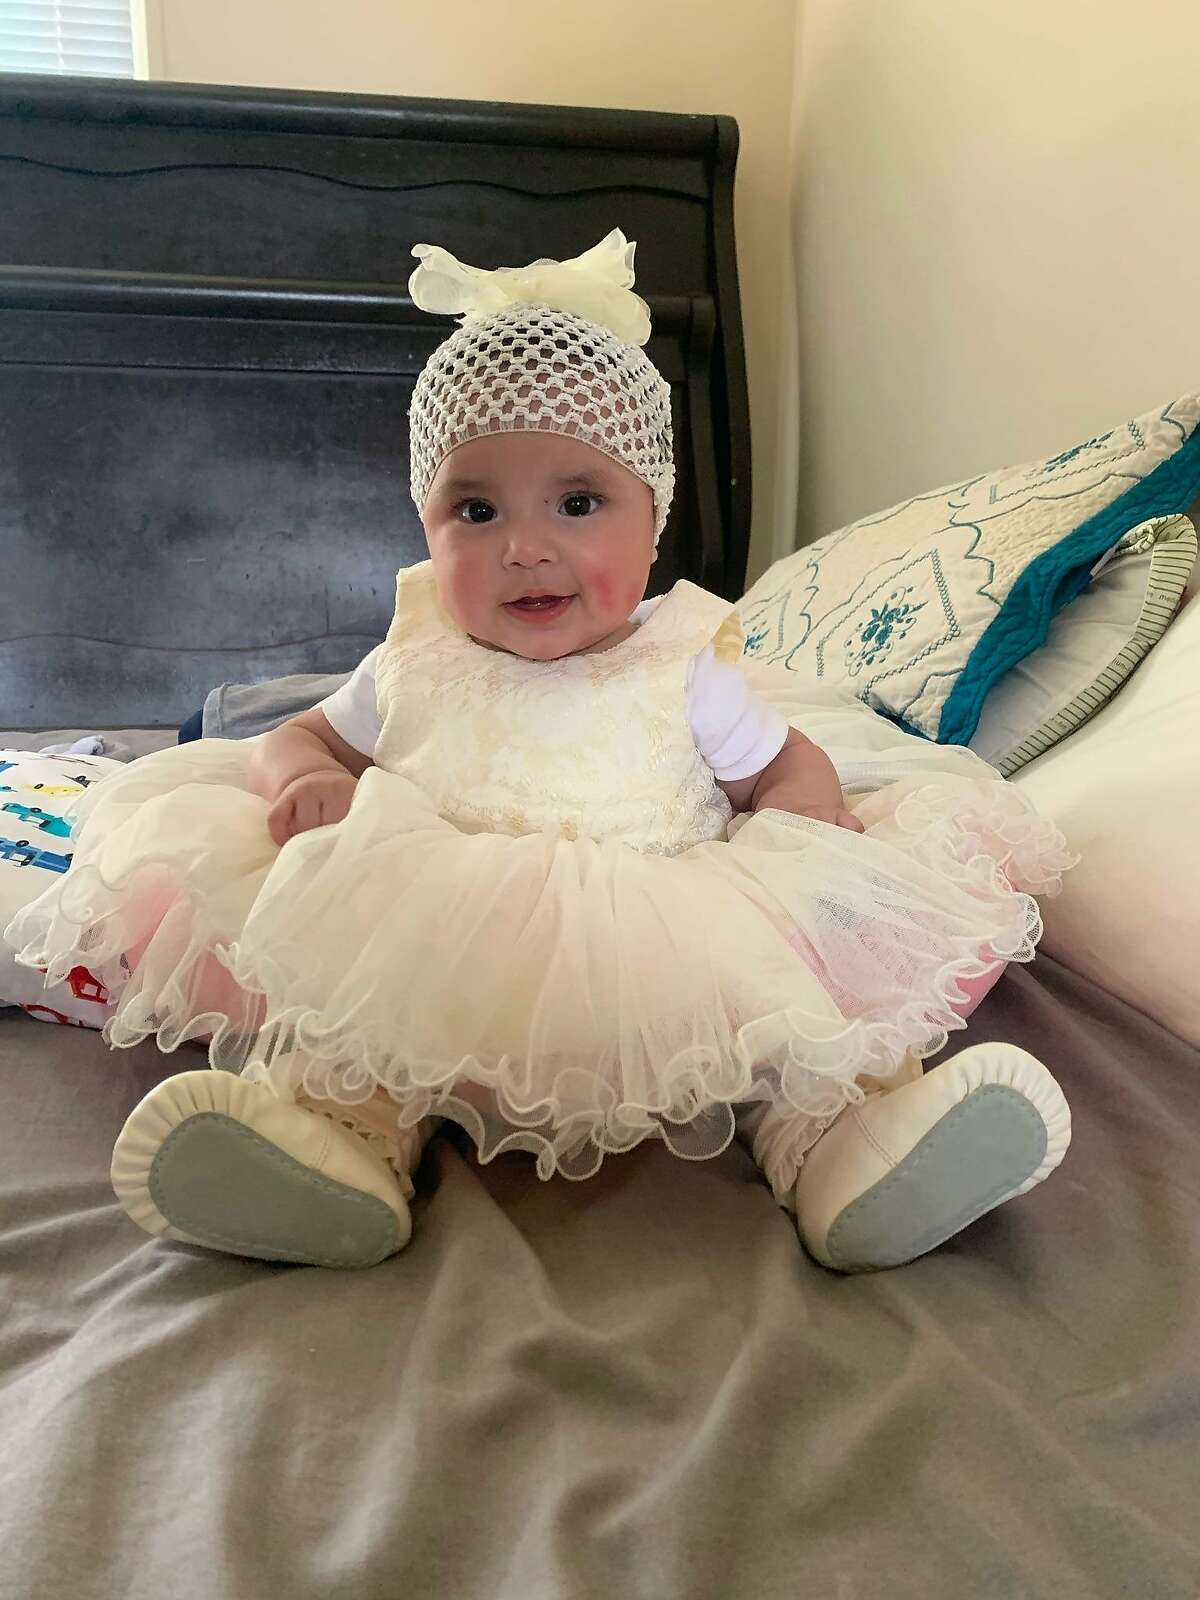 A photo of 5-month-old Abigail Ramirez-Banales, whom, along with her mother, 16-year-old Claudia Ramirez-Banales, have not been heard from since Saturday. San Mateo police are seeking the public's help in locating them. Both are considered to be at-risk because of their ages.